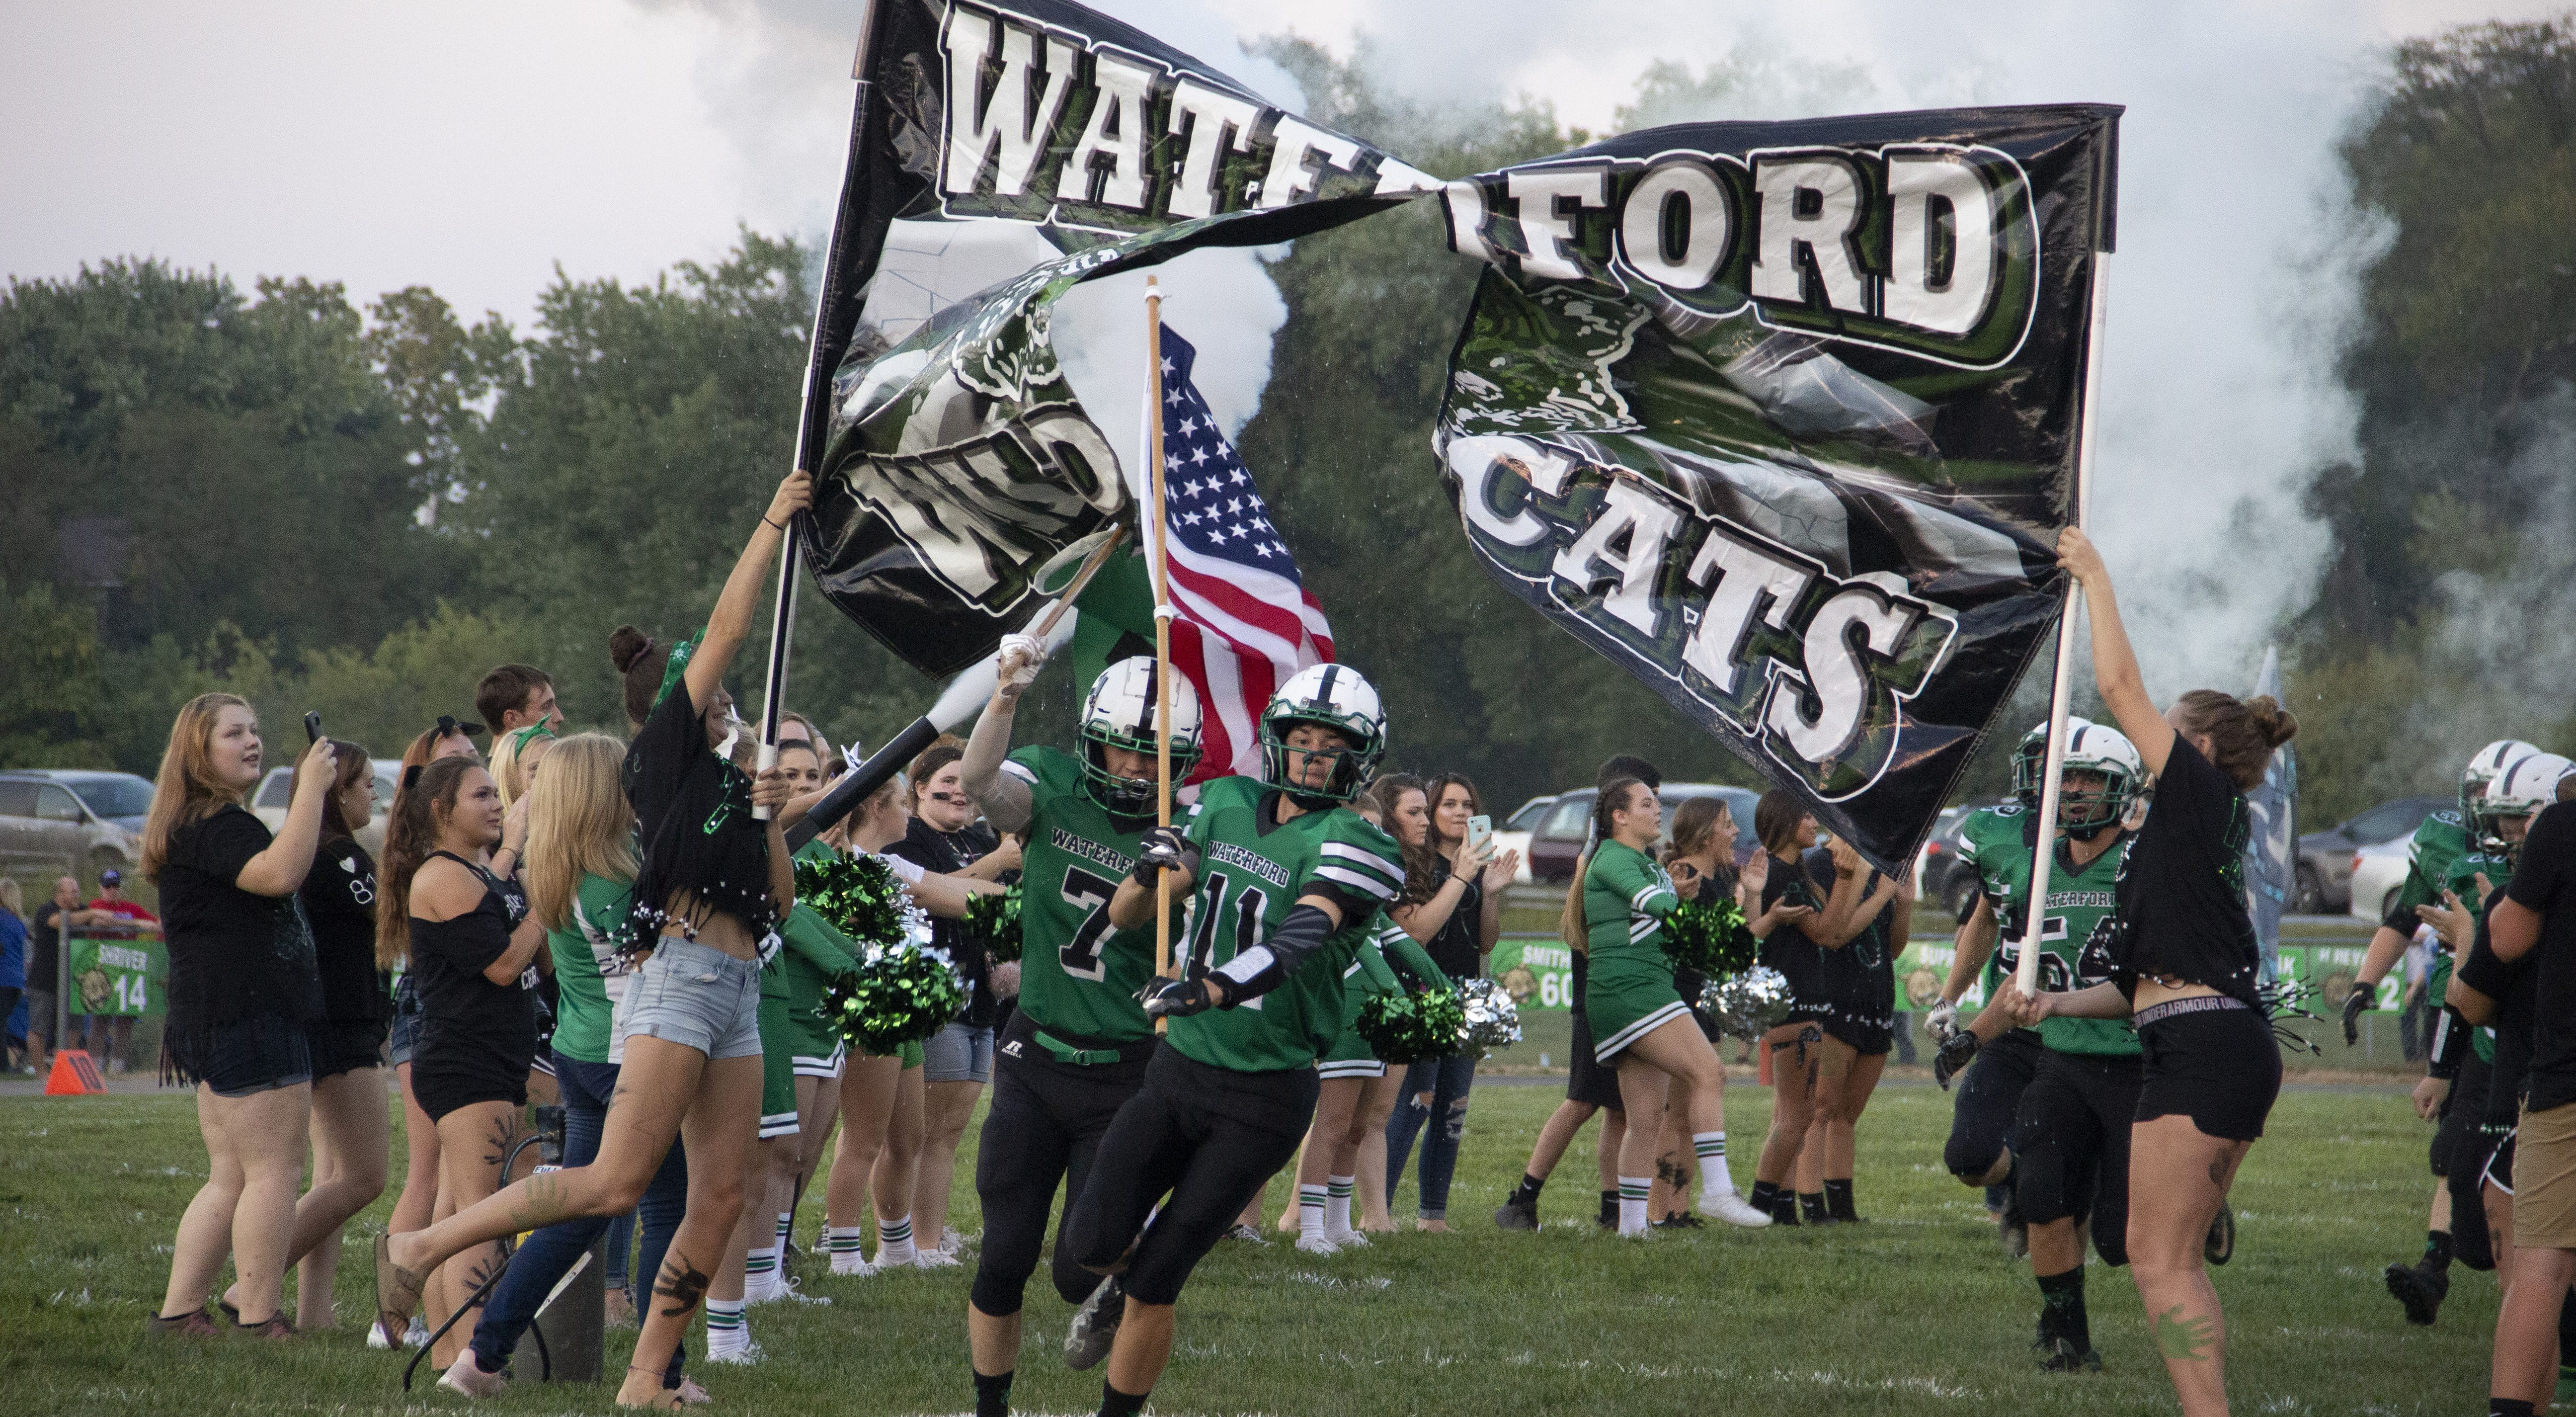 The Waterford Wildcats break through the banner